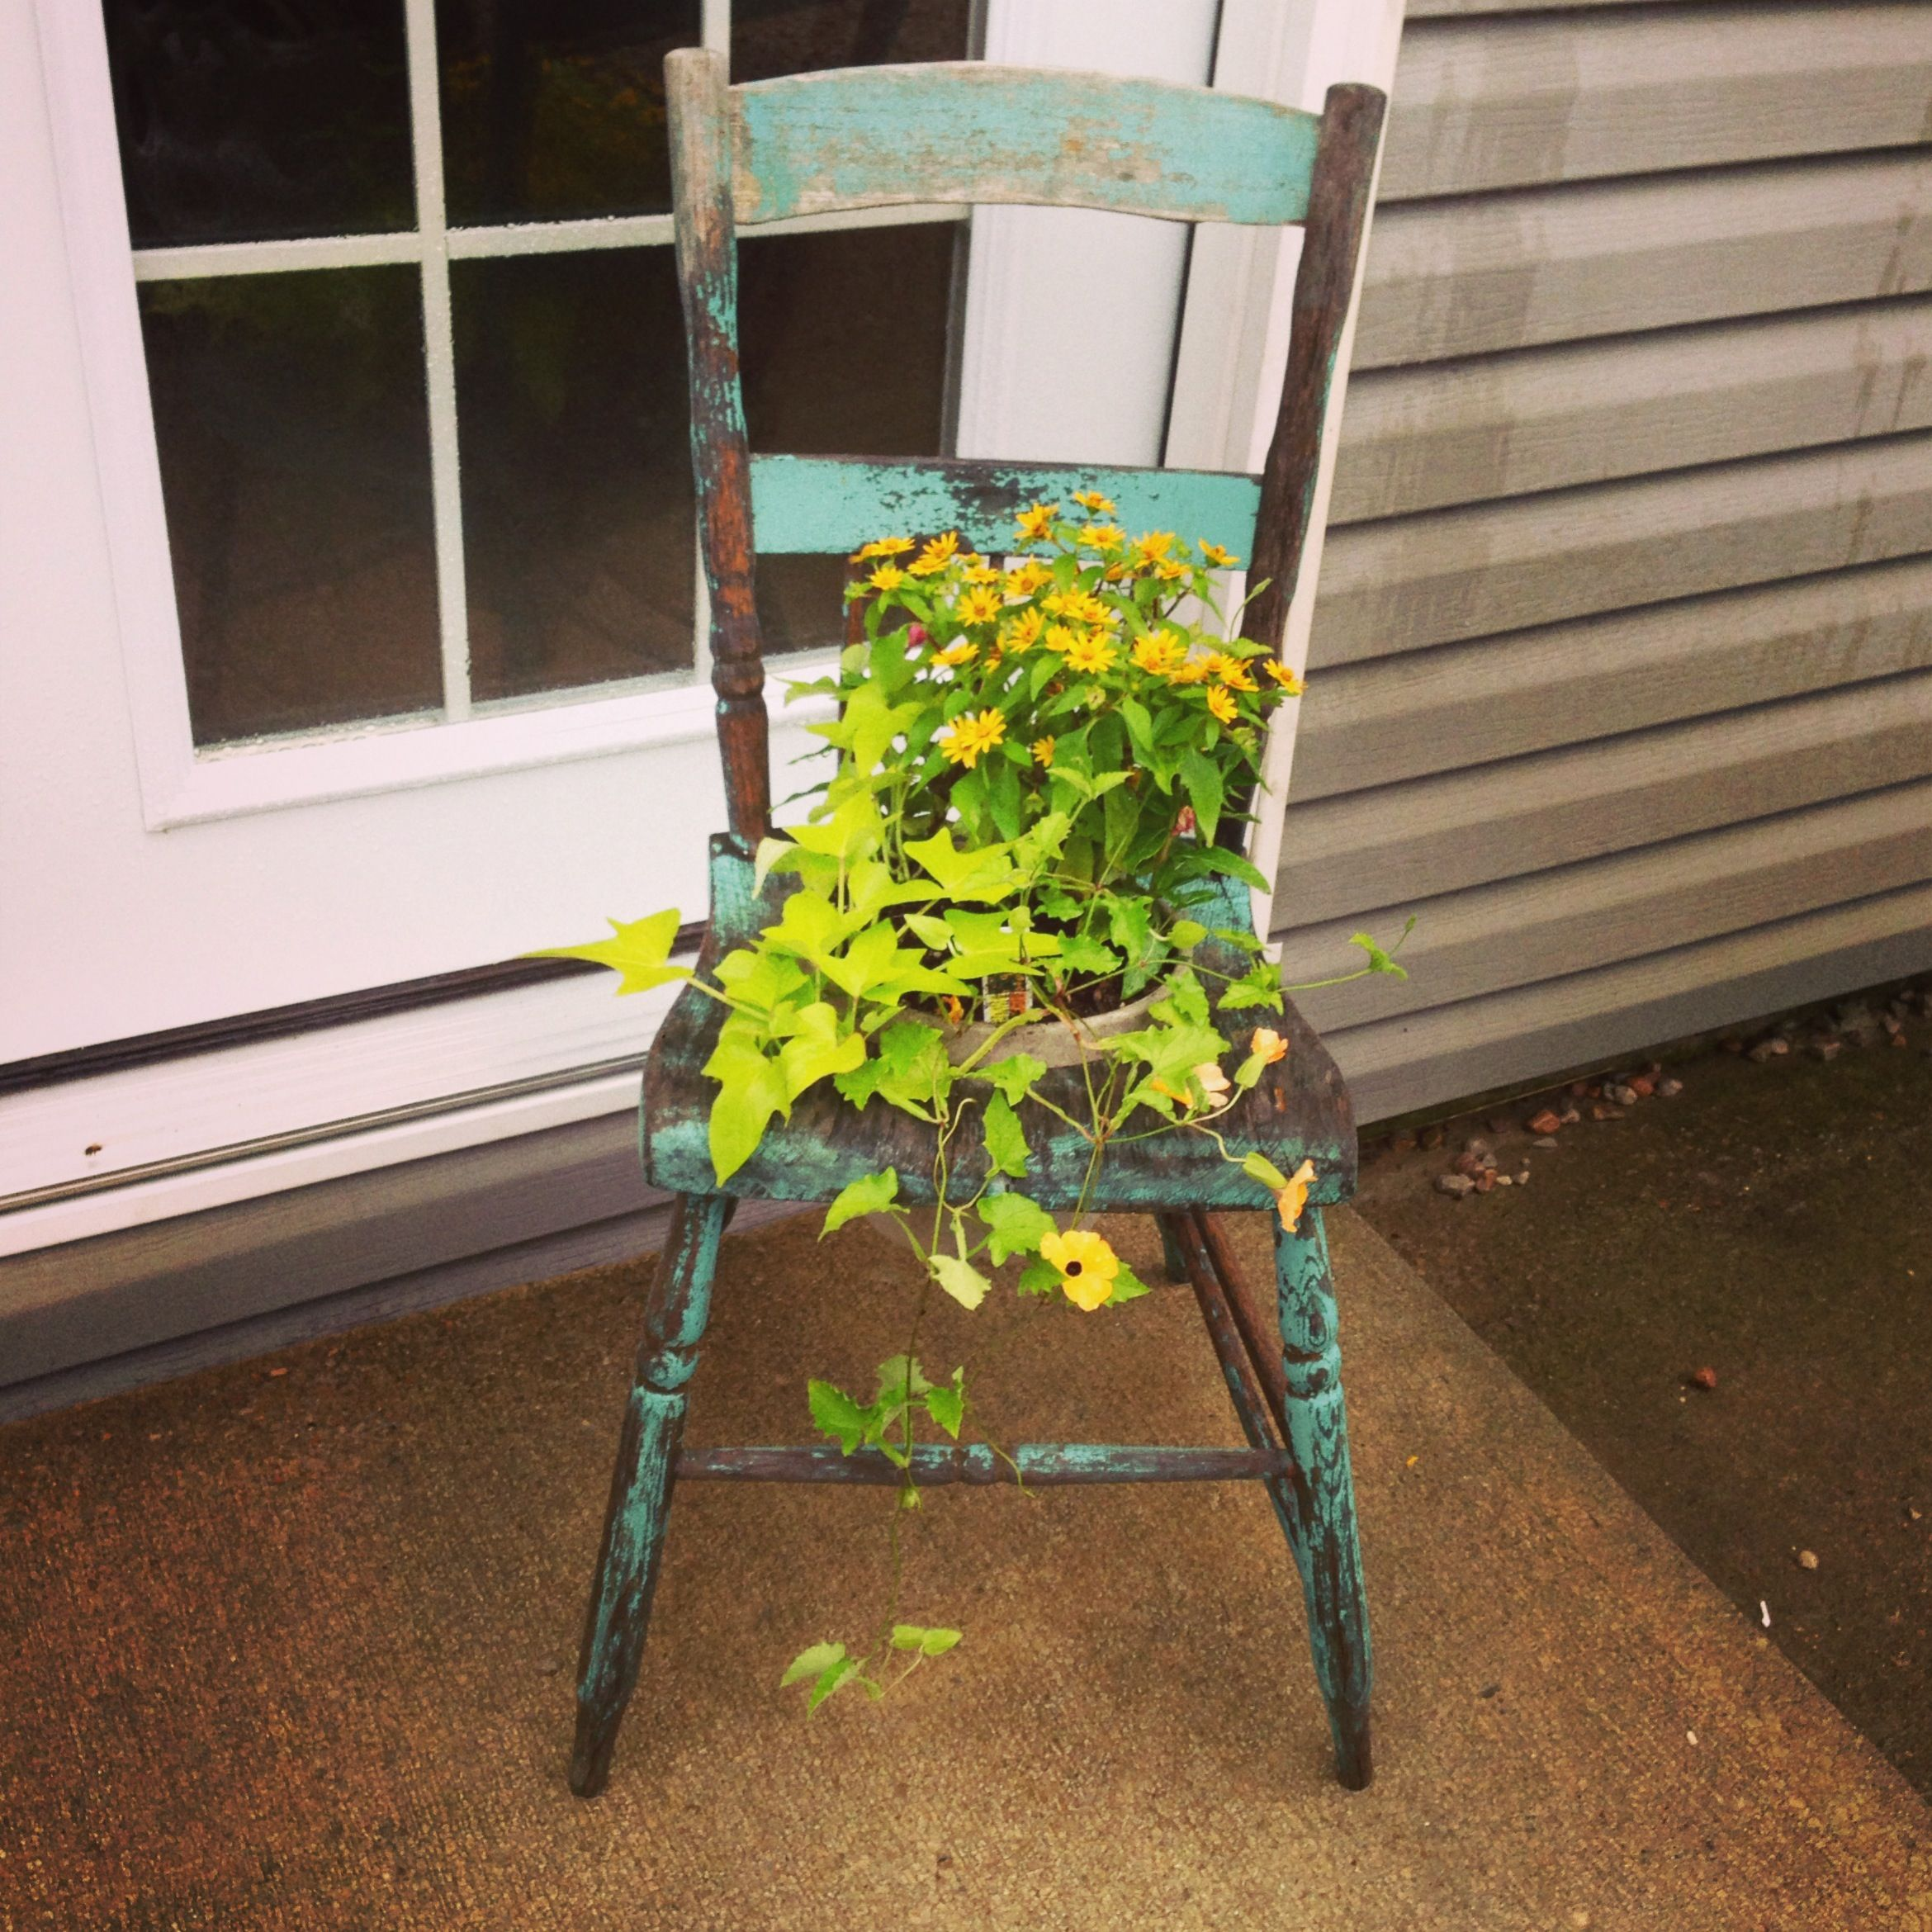 Wheelchair With Pot Where To Buy Tommy Bahama Beach Chair Old Wooden A Flower Chairs Pinterest